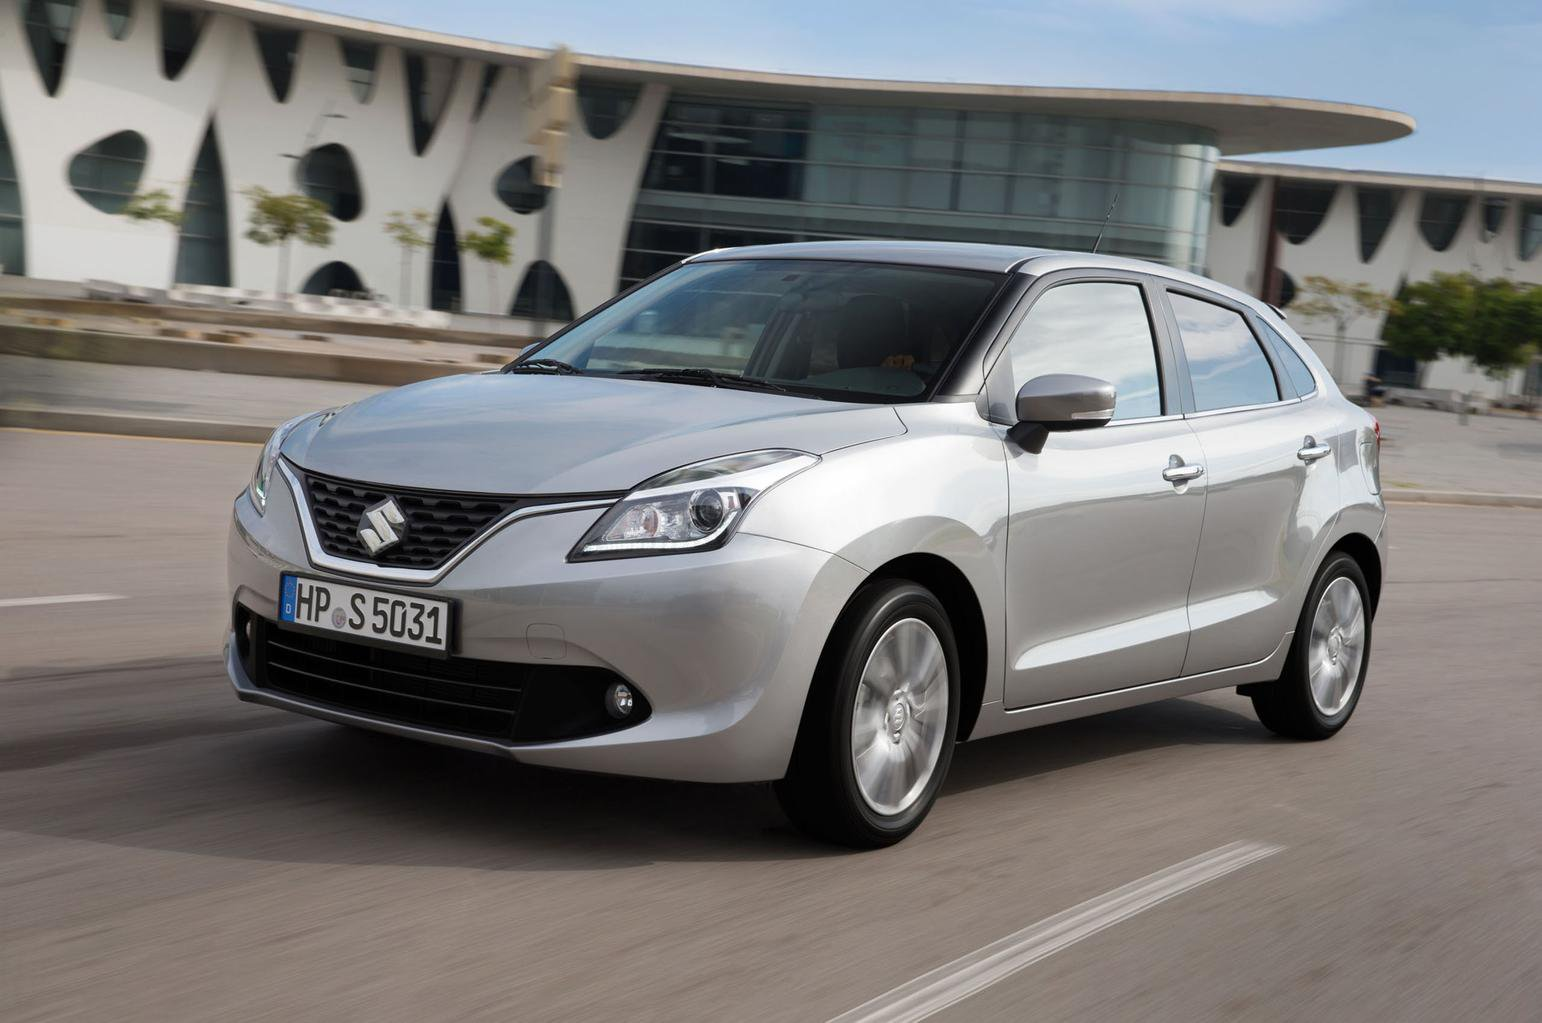 2015 Suzuki Baleno 1.0 Boosterjet review